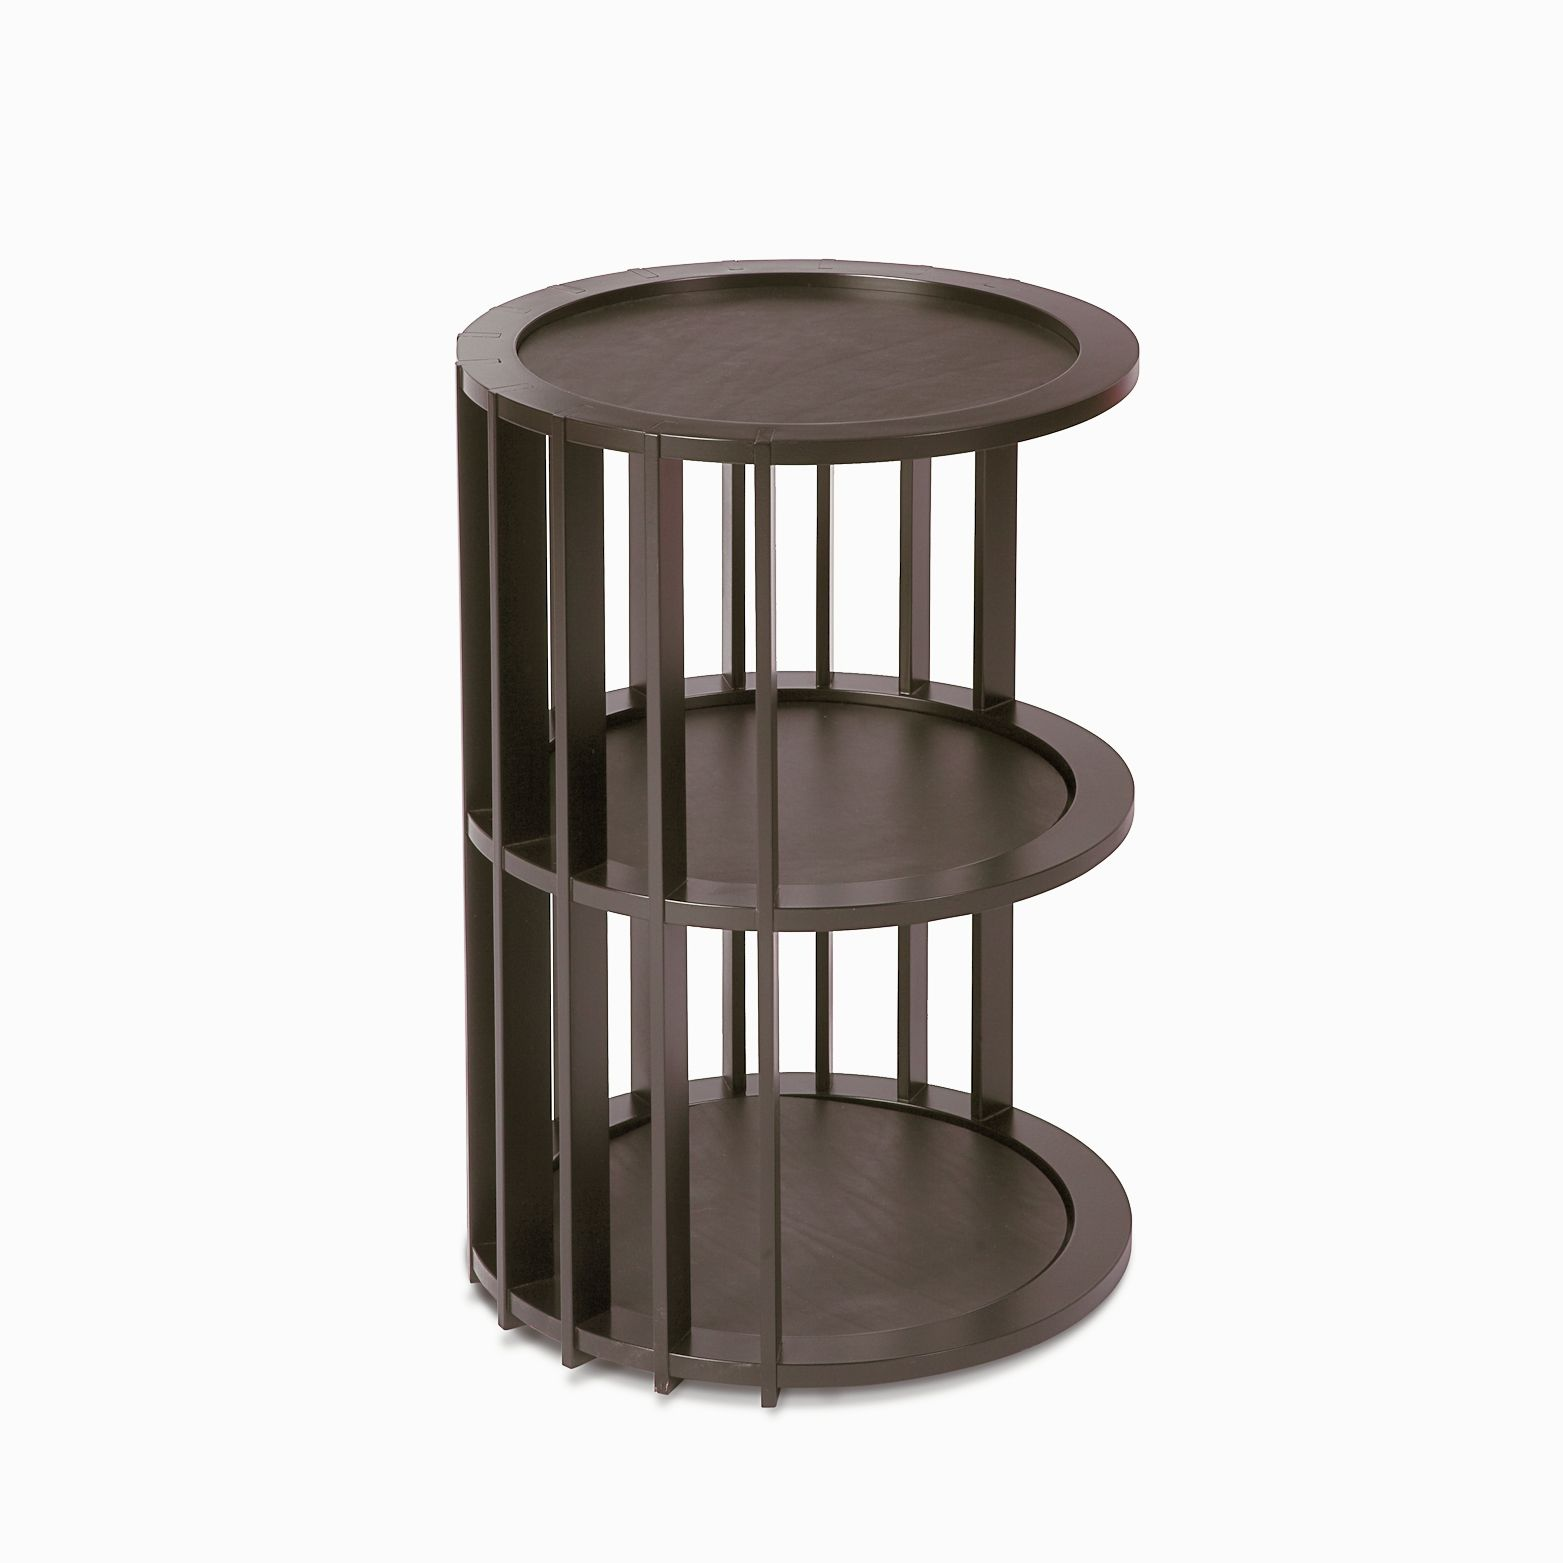 Rib Side Table Mobel Table Furniture Table Side Coffee Table